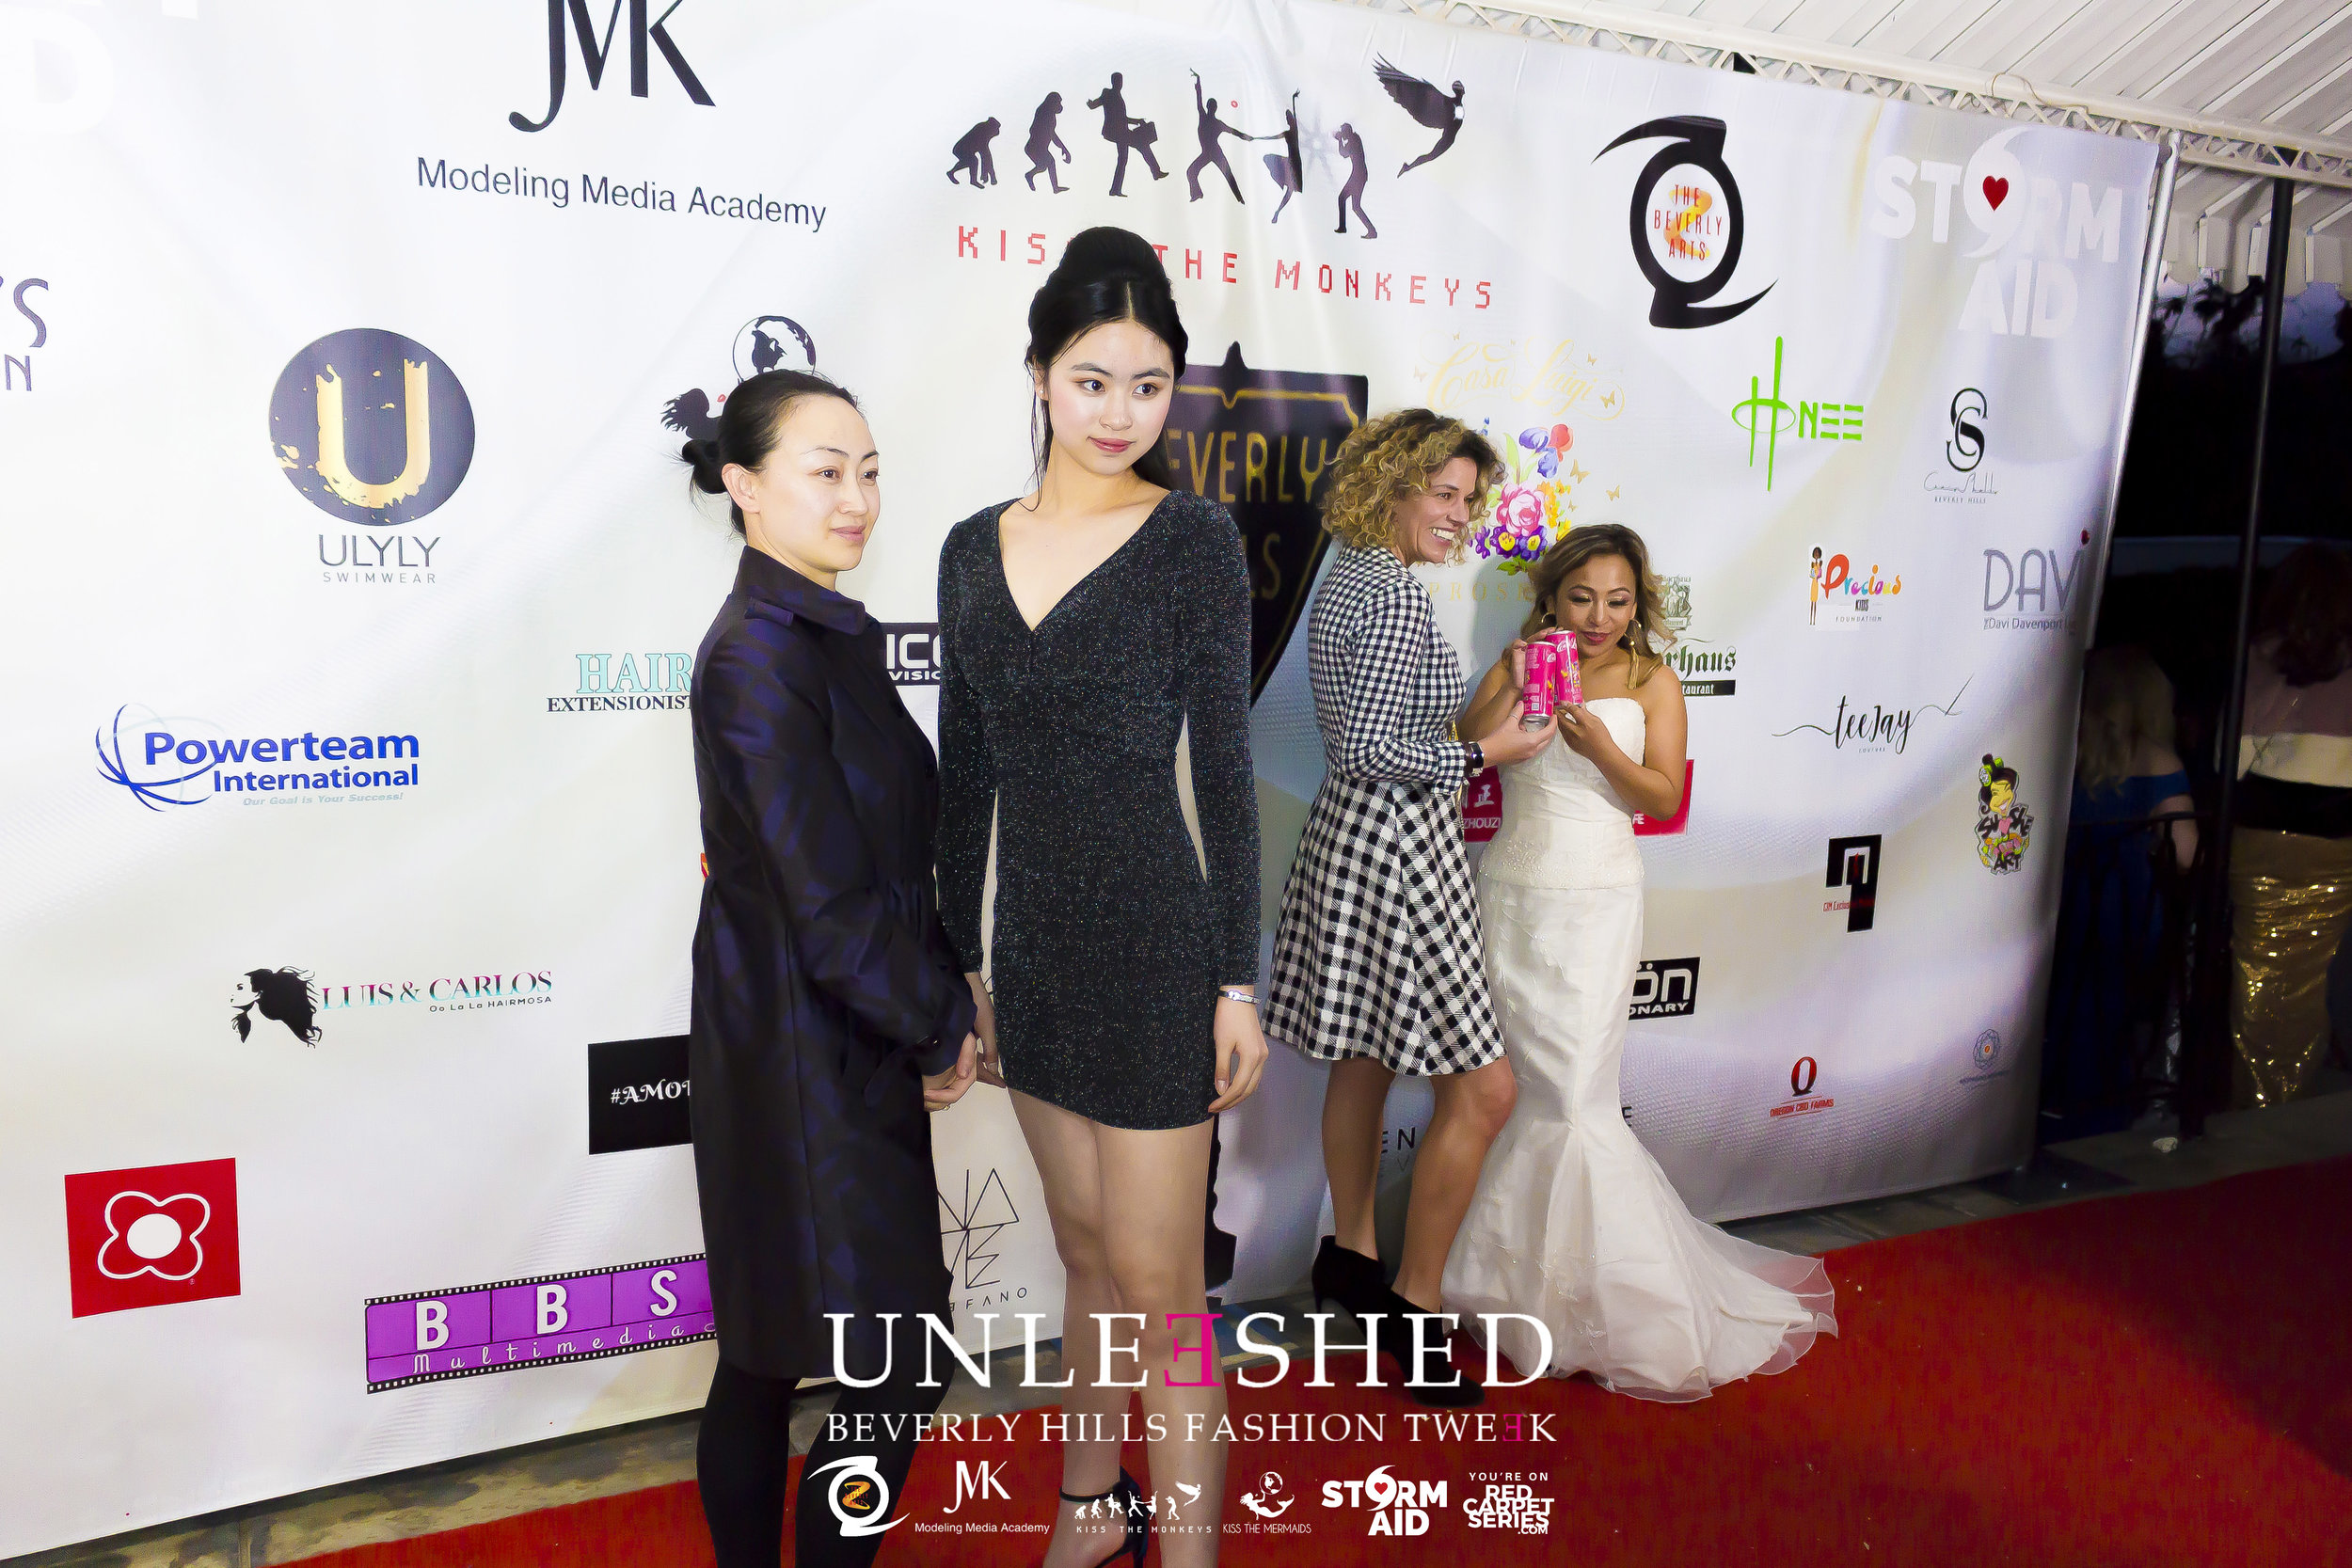 KTM - BH Fashion Tweek + Al's Bday_68 (3).jpg